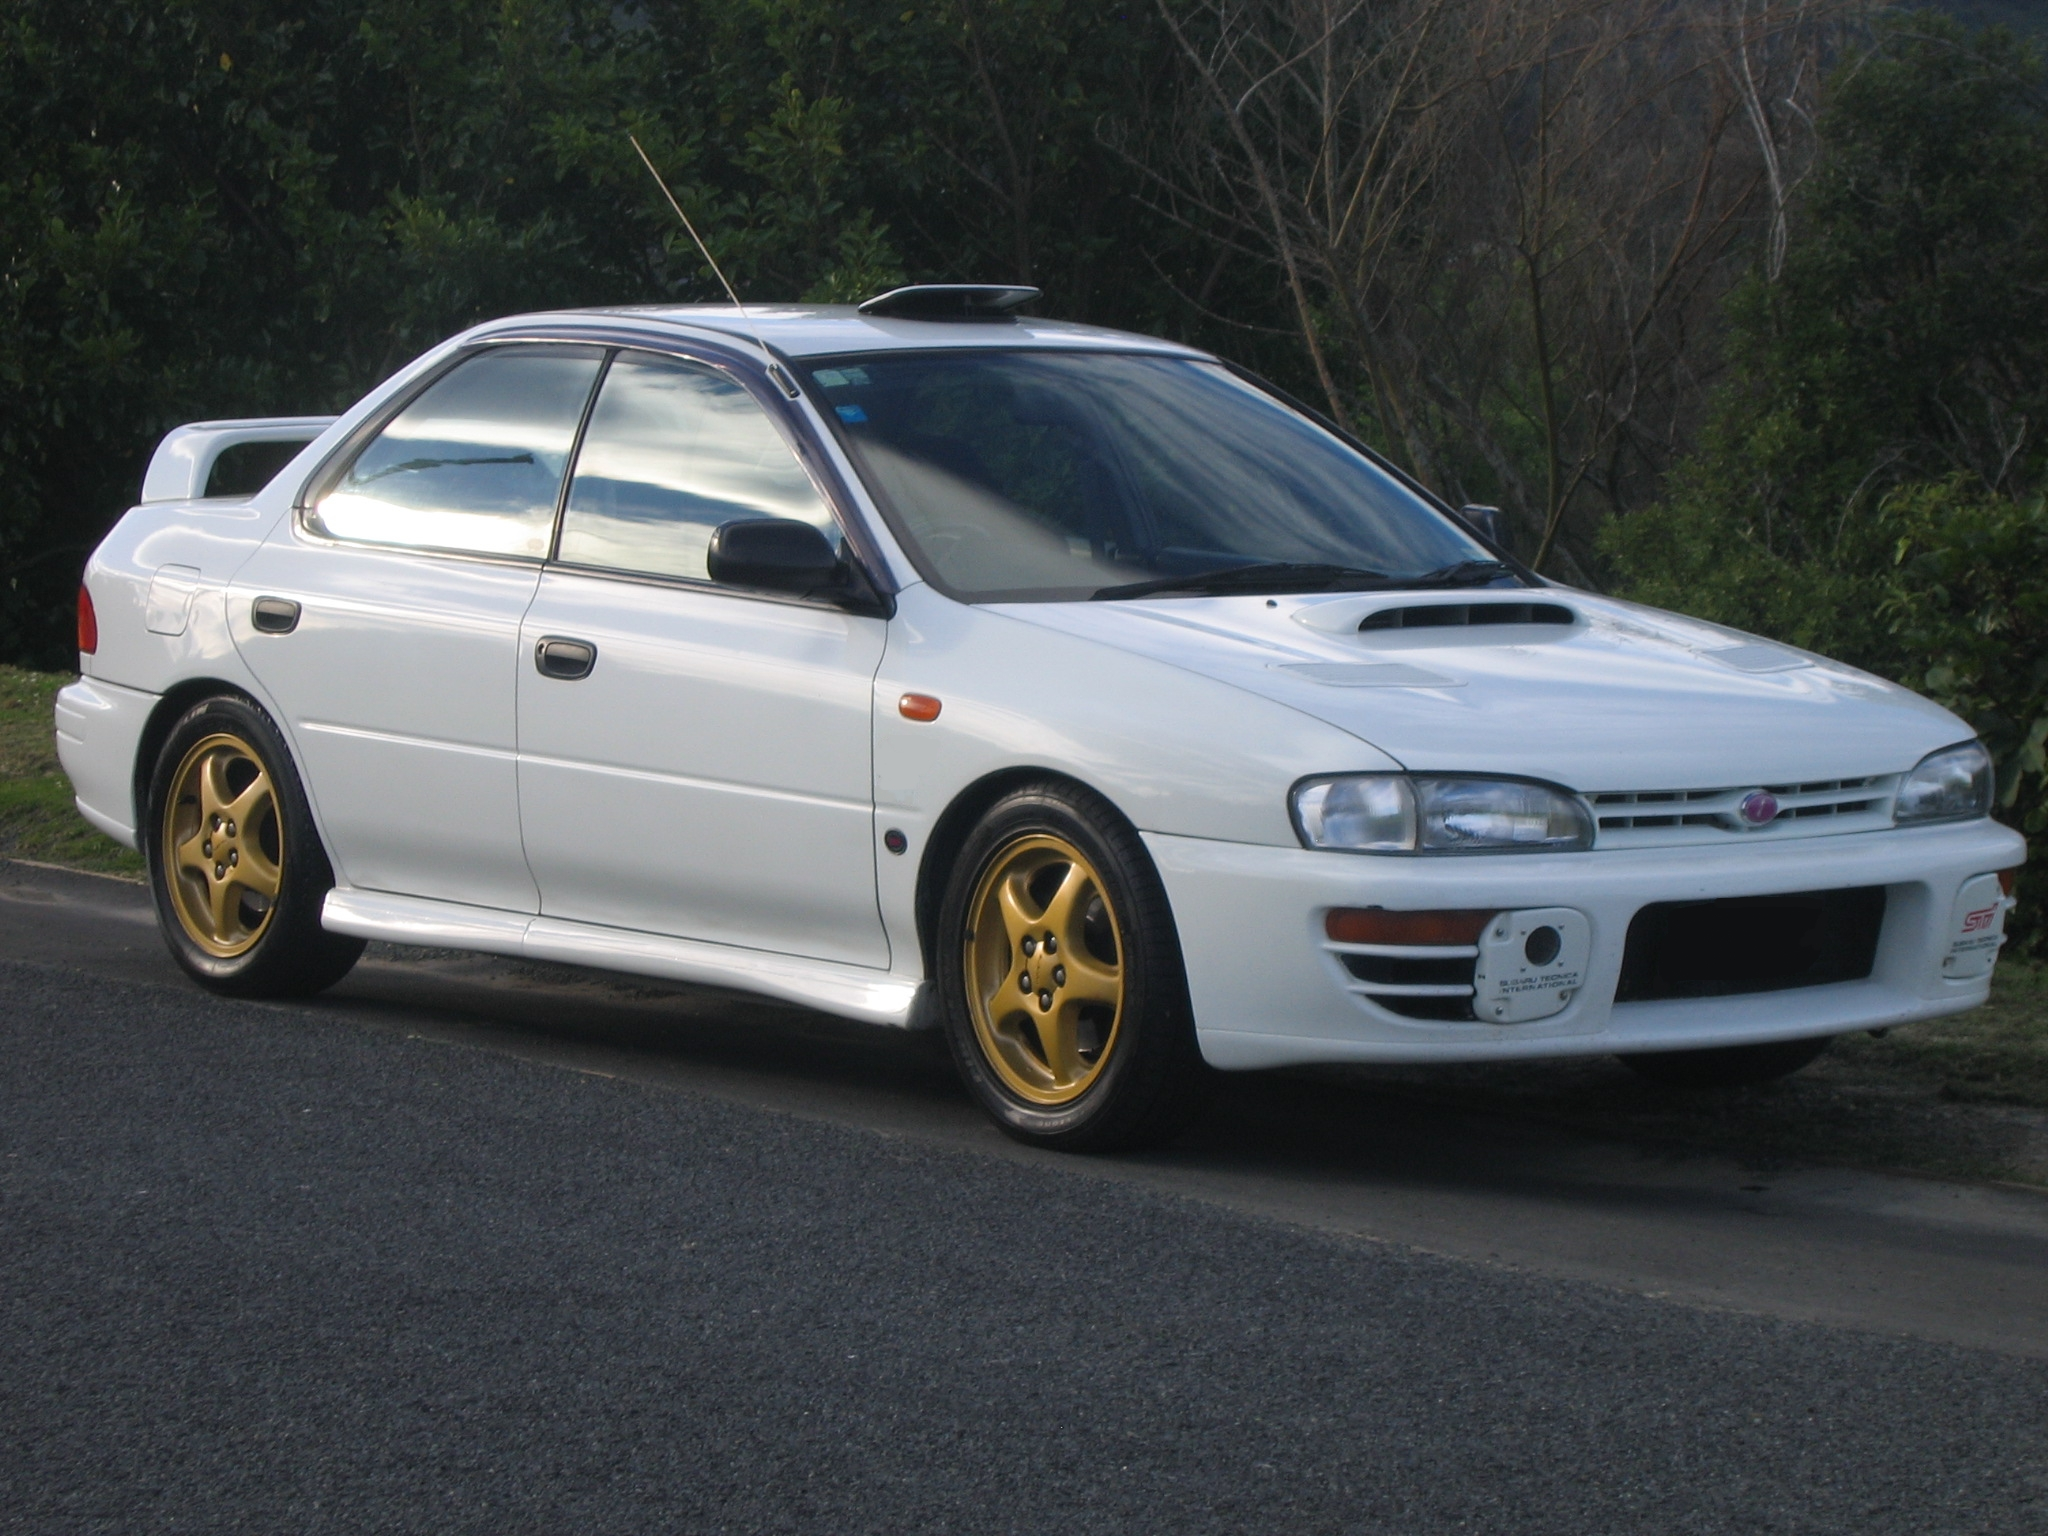 1995 Subaru Impreza Photos, Informations, Articles - BestCarMag.com